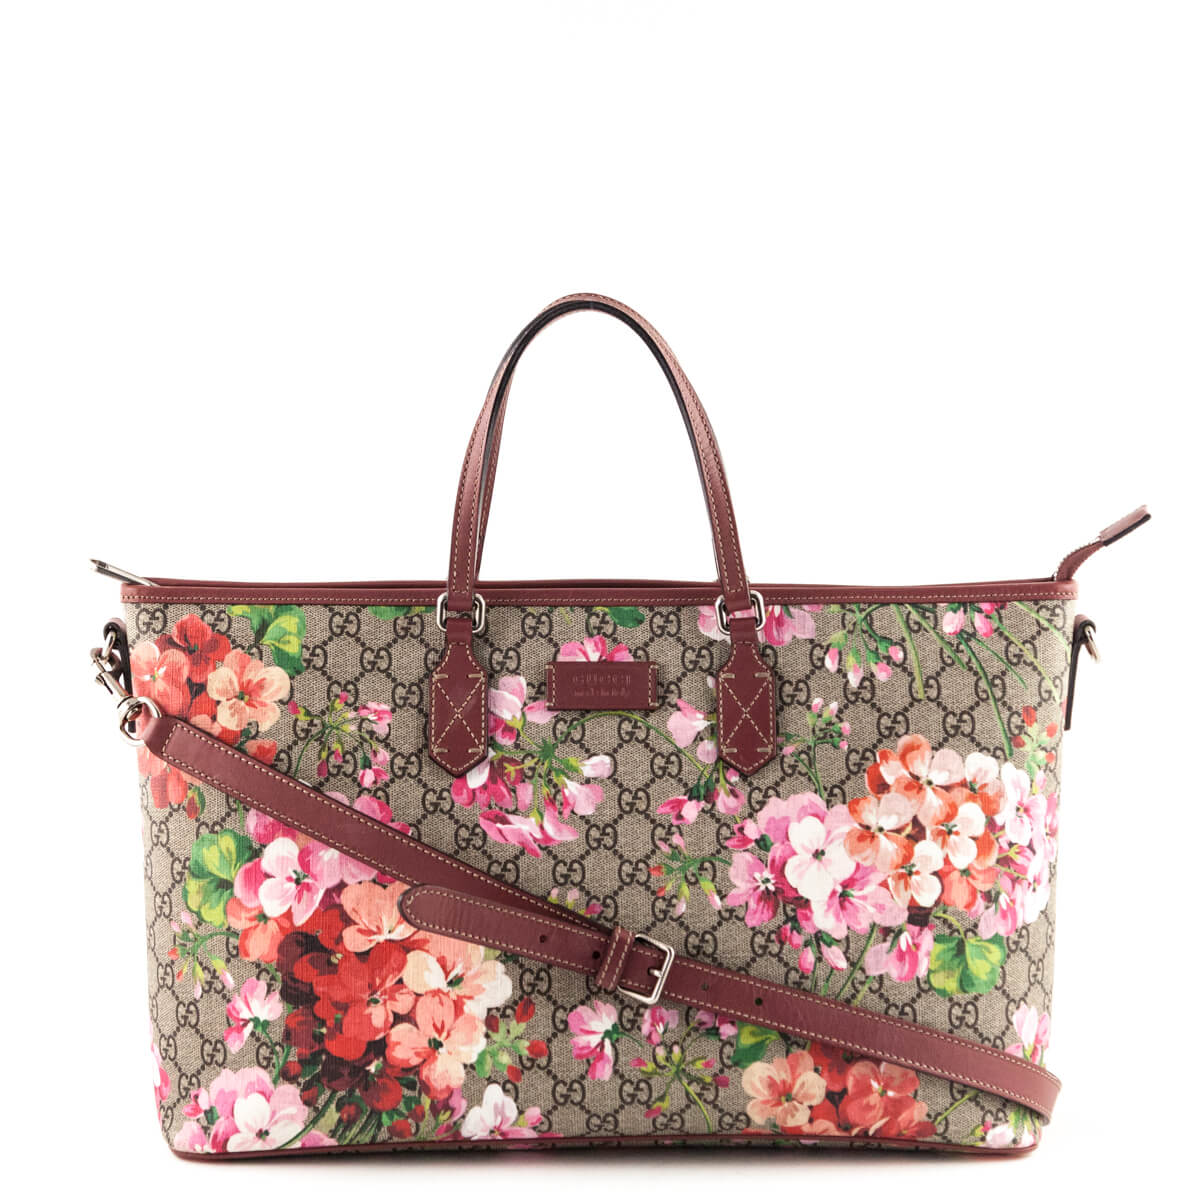 107b479f90e Gucci Antique Rose Monogram Soft GG Blooms Tote - LOVE that BAG - Preowned  Authentic Designer ...